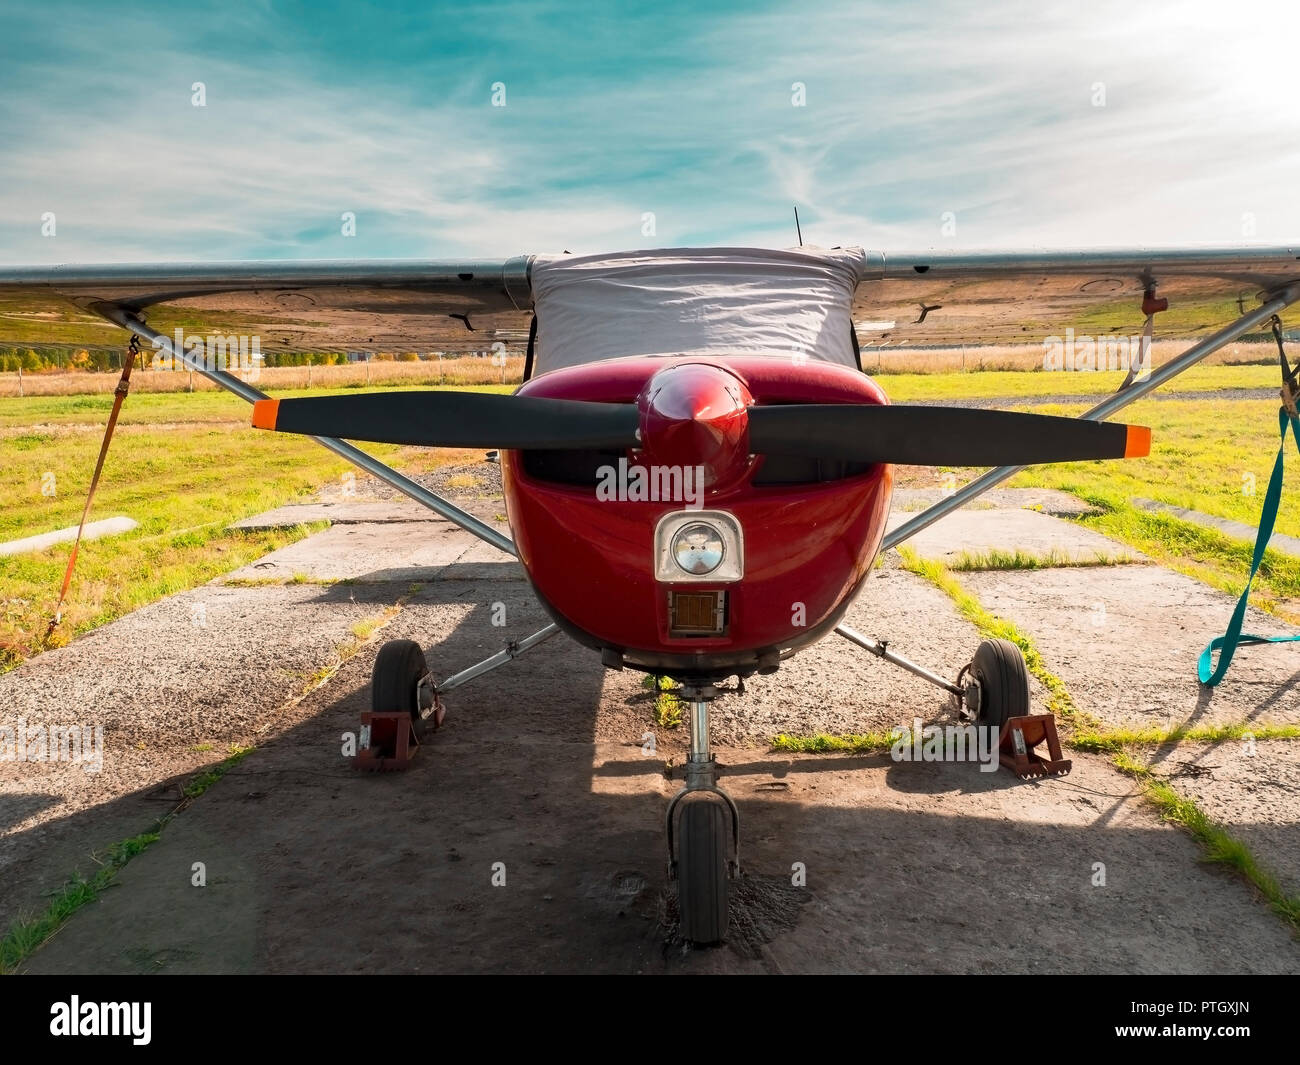 View of classic airplane on the grassy airfield; aircraft after the flight with cases on propellers and other elements; front view of small sport silv - Stock Image